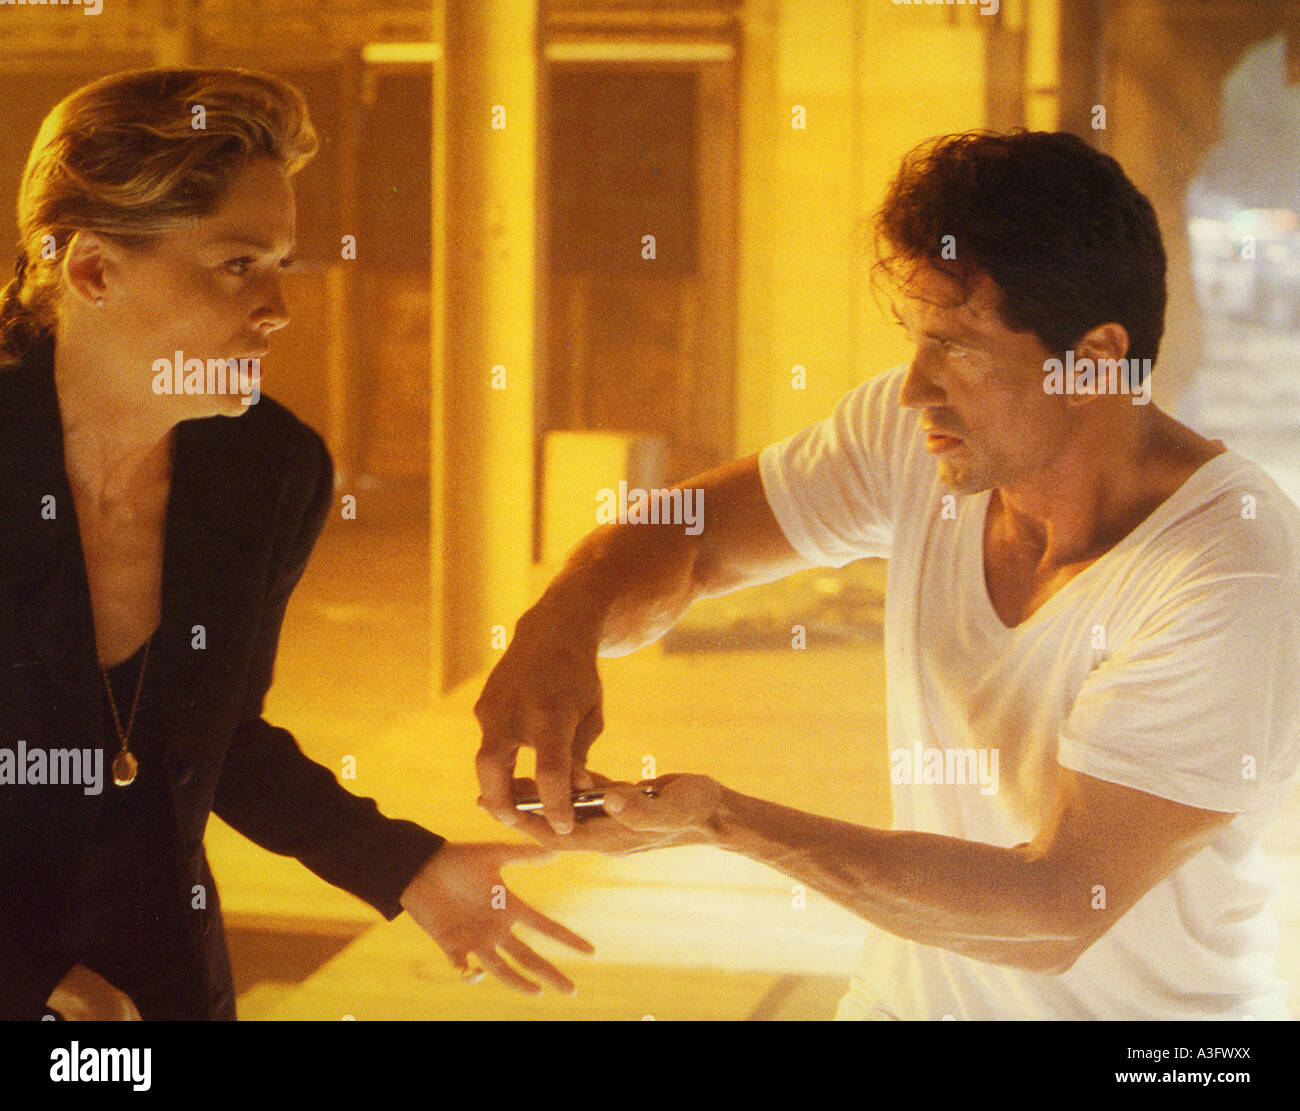 THE SPECIALIST  1994 Warner film with Sylvester Stallone and Sharon Stone - Stock Image